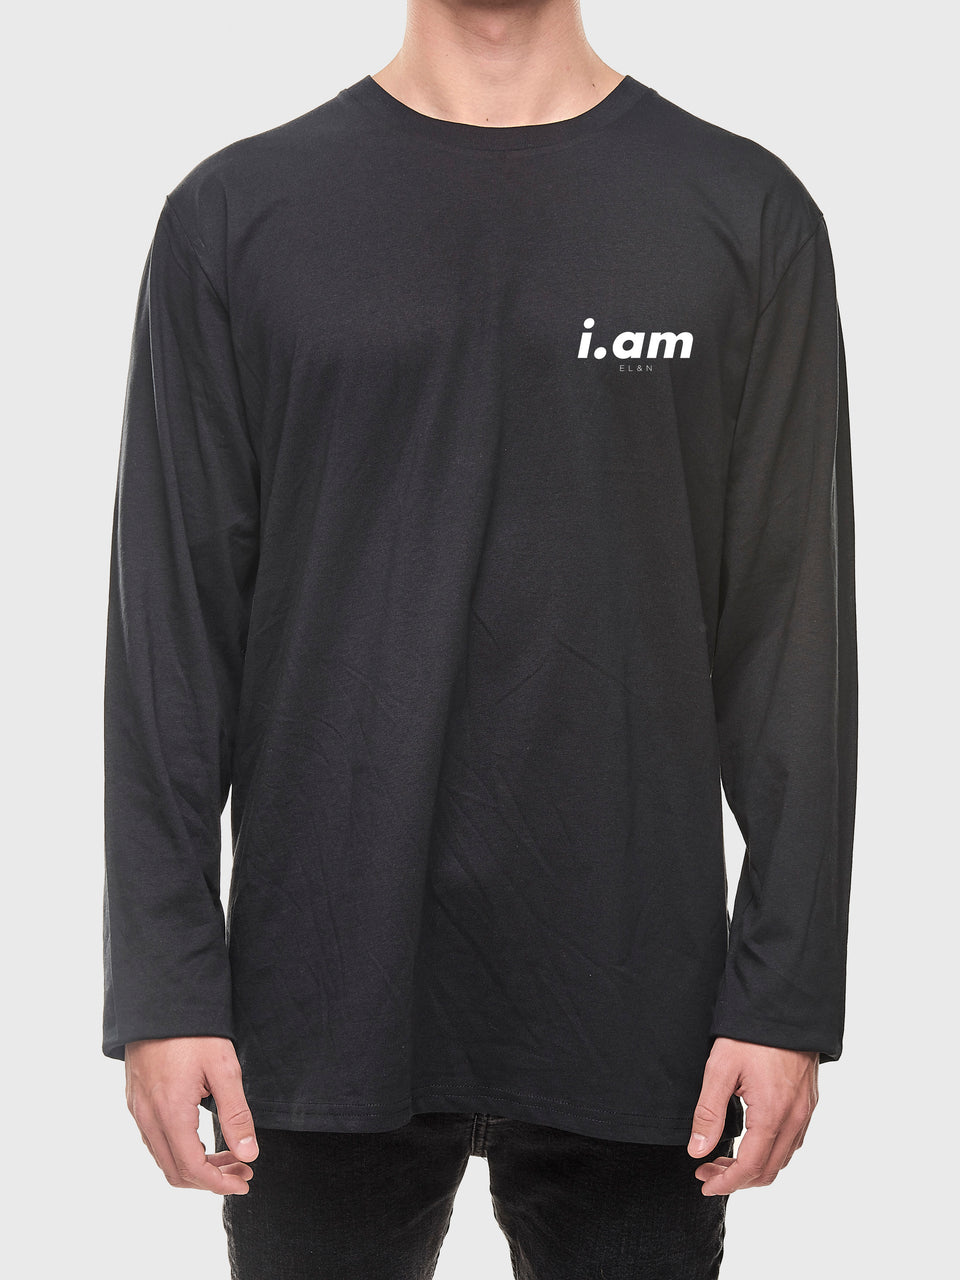 Making it - Black - Unisex long sleeve T